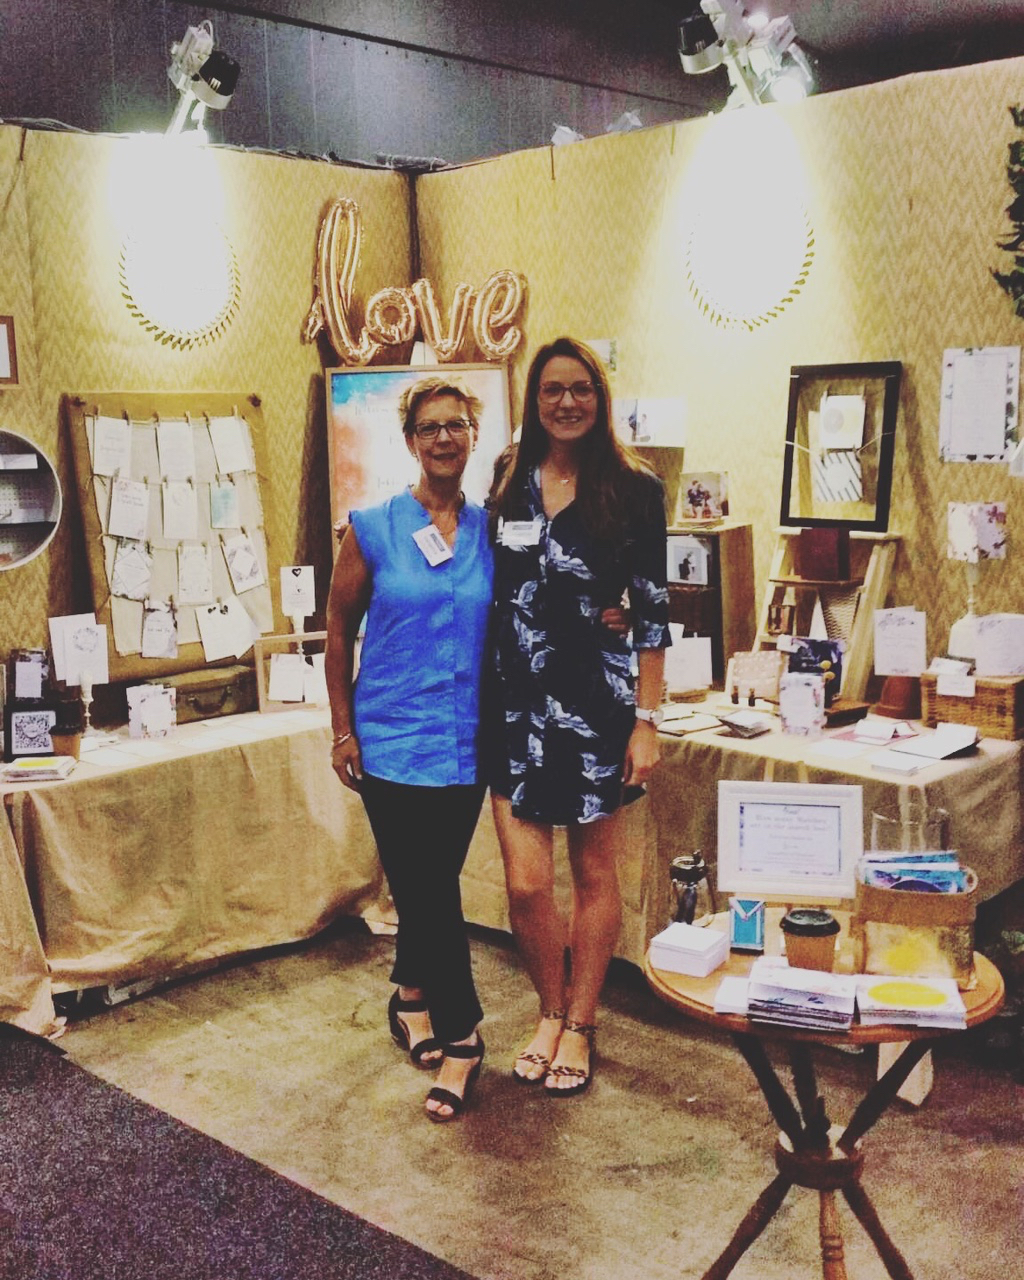 This is Mum and I, she's my little assistant who is also the artist of a lot of the artwork I use, specialising in Watercolour.   If you come visit me at the Bridal Fair's she'll be there chatting to everyone and supporting me everyday.